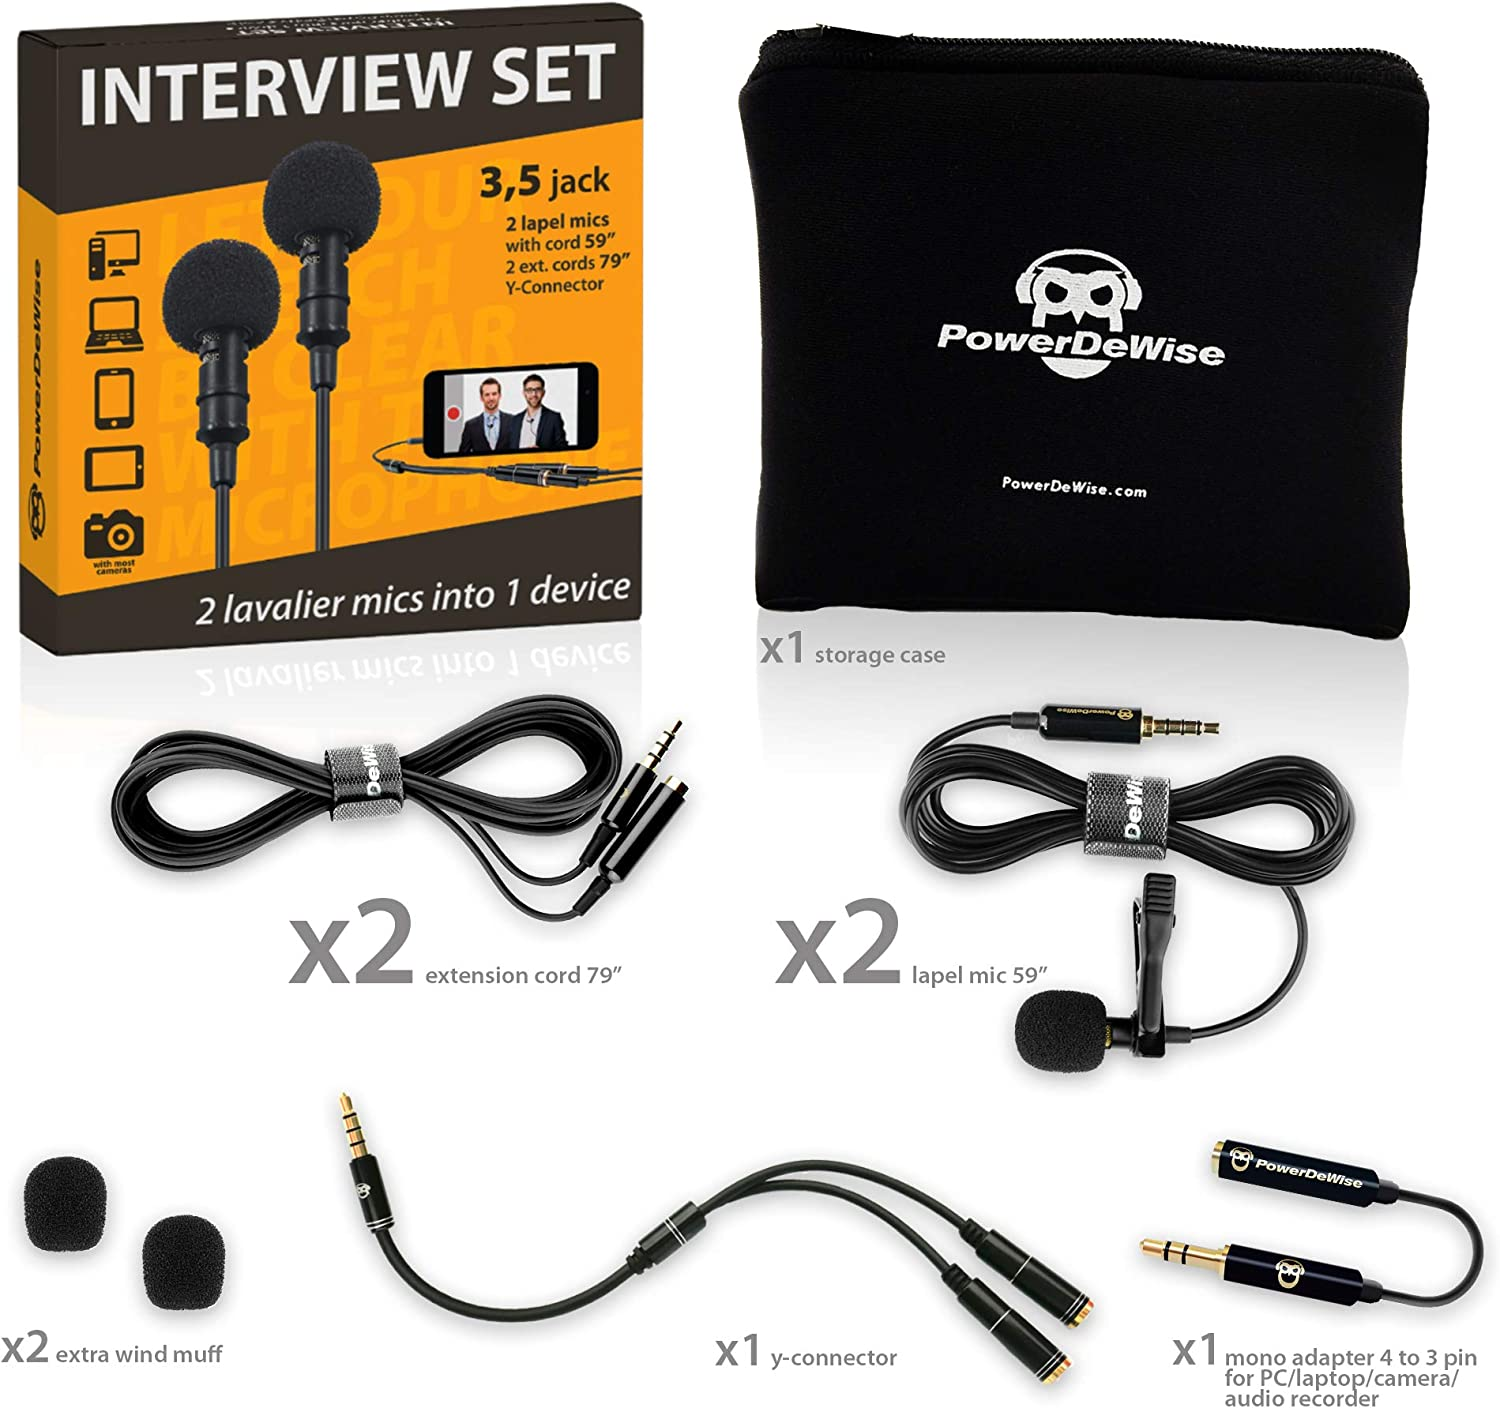 Professional Grade 2 Lavalier Lapel Microphones Set for Dual Interview on alpine stereo harness, amp bypass harness, cable harness, pet harness, engine harness, battery harness, fall protection harness, obd0 to obd1 conversion harness, suspension harness, electrical harness, safety harness, maxi-seal harness, radio harness, nakamichi harness, dog harness, oxygen sensor extension harness, pony harness,